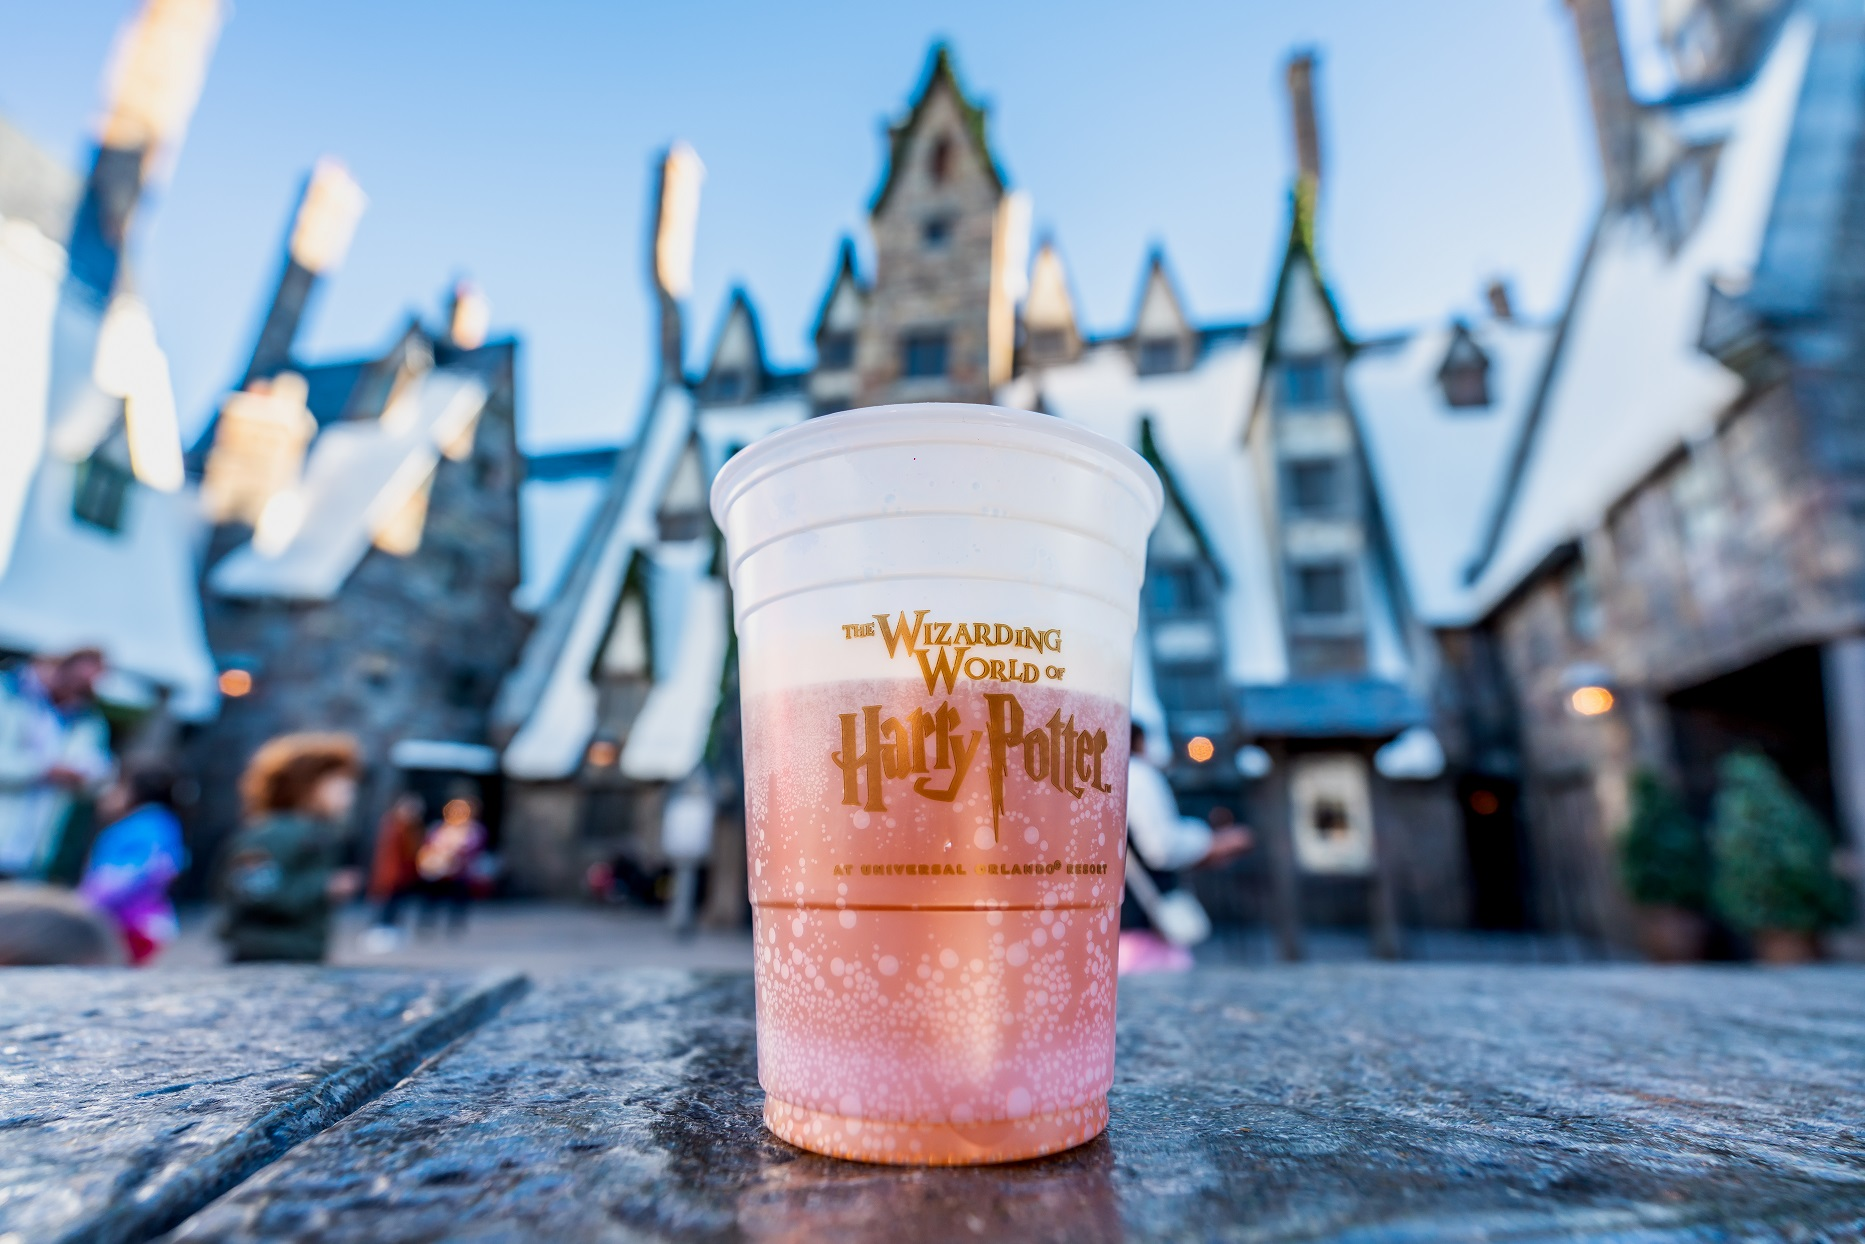 The Wizarding World of Harry Potter Cup of Butterbeer